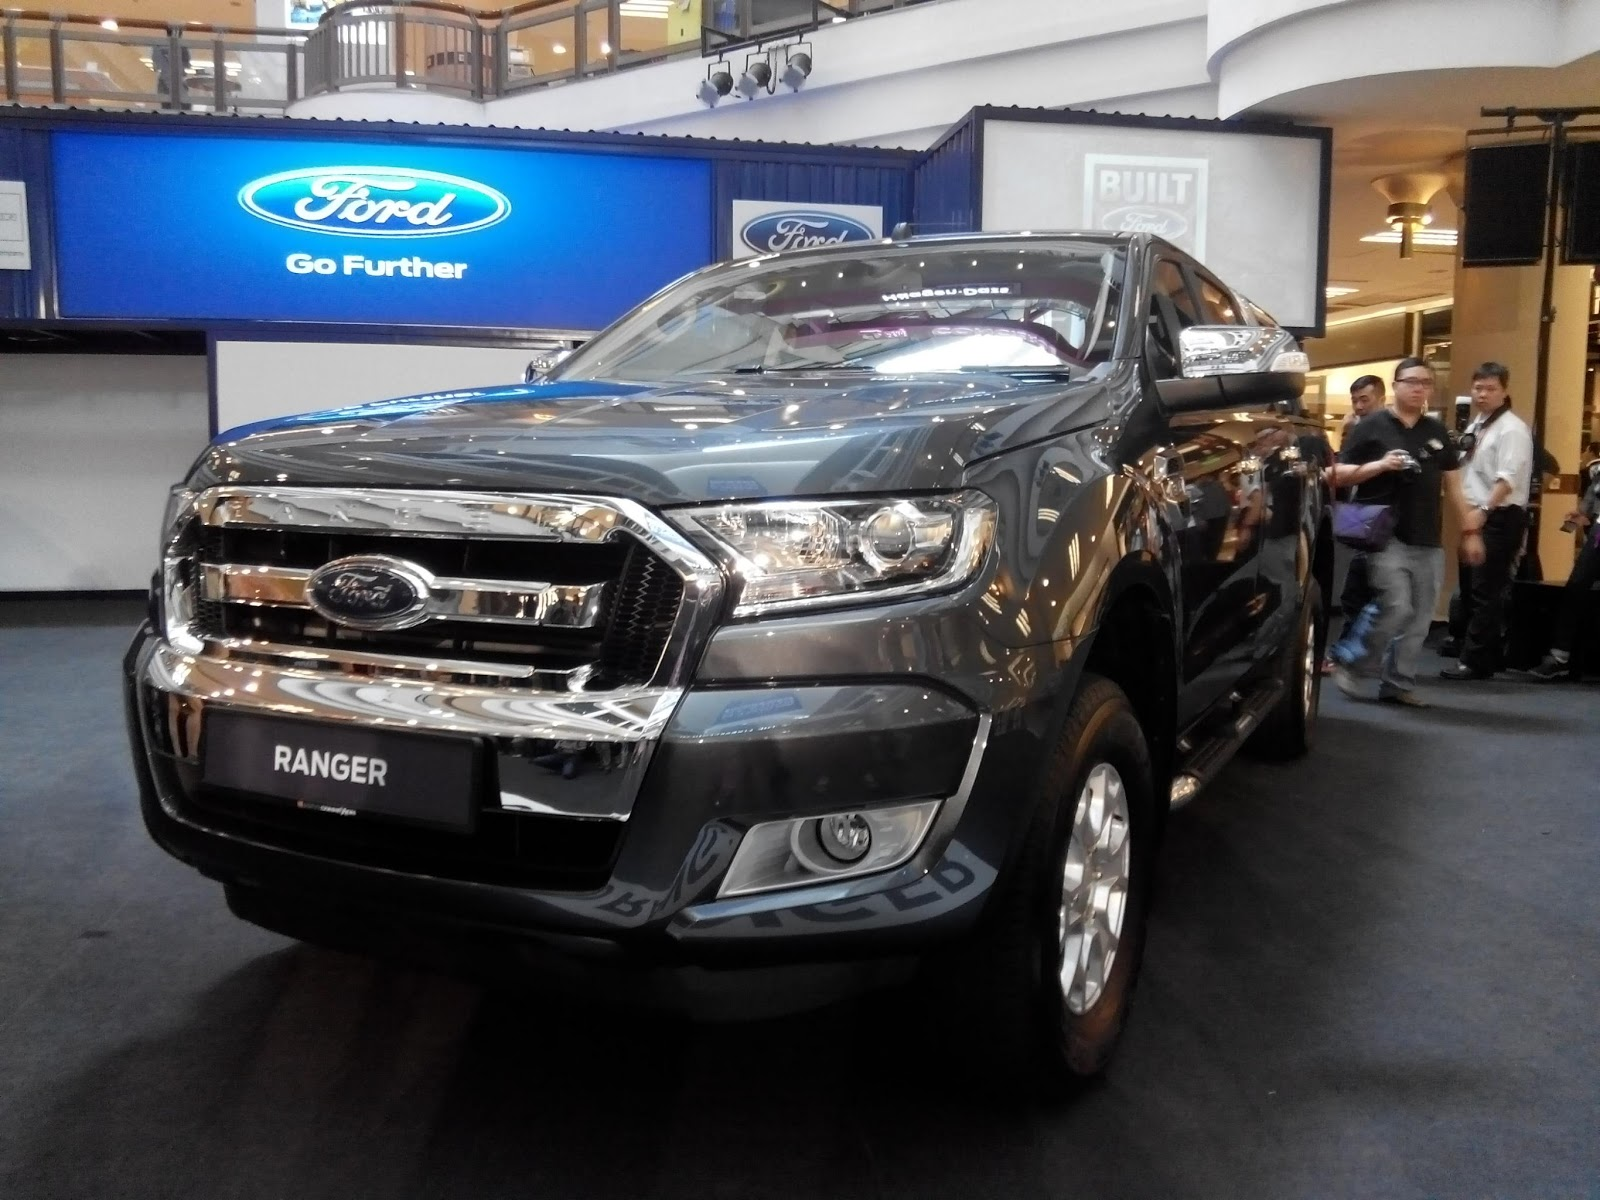 All in all the new ford ranger is a nice upgrade over the new